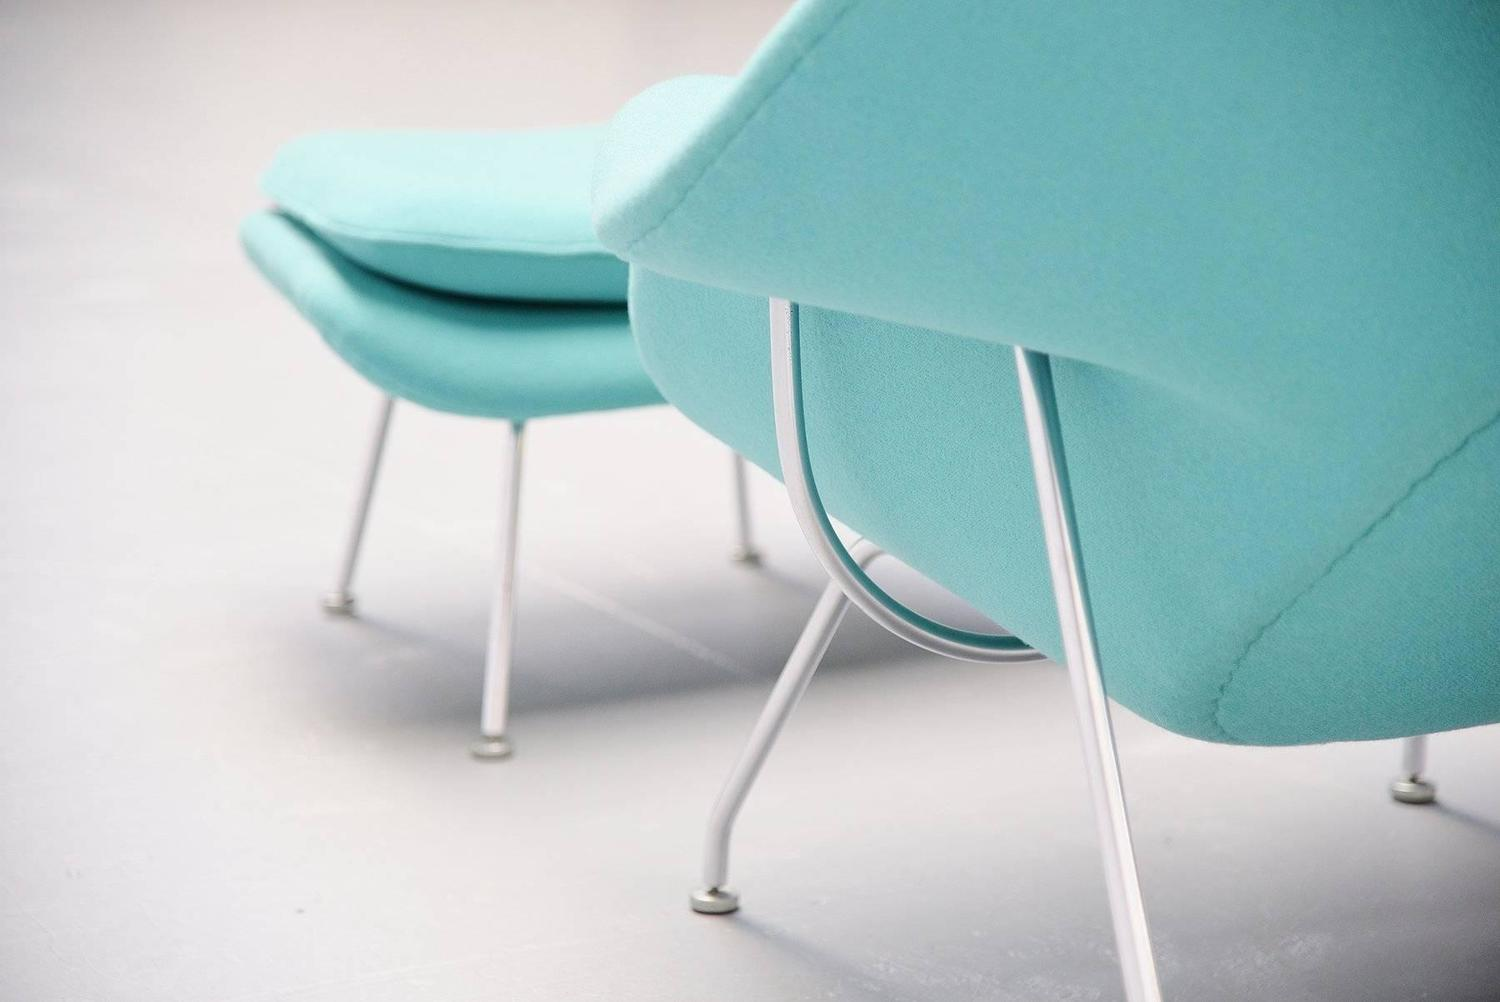 Eero saarinen womb chair knoll international usa 1952 for sale at 1stdibs - Vintage womb chair for sale ...